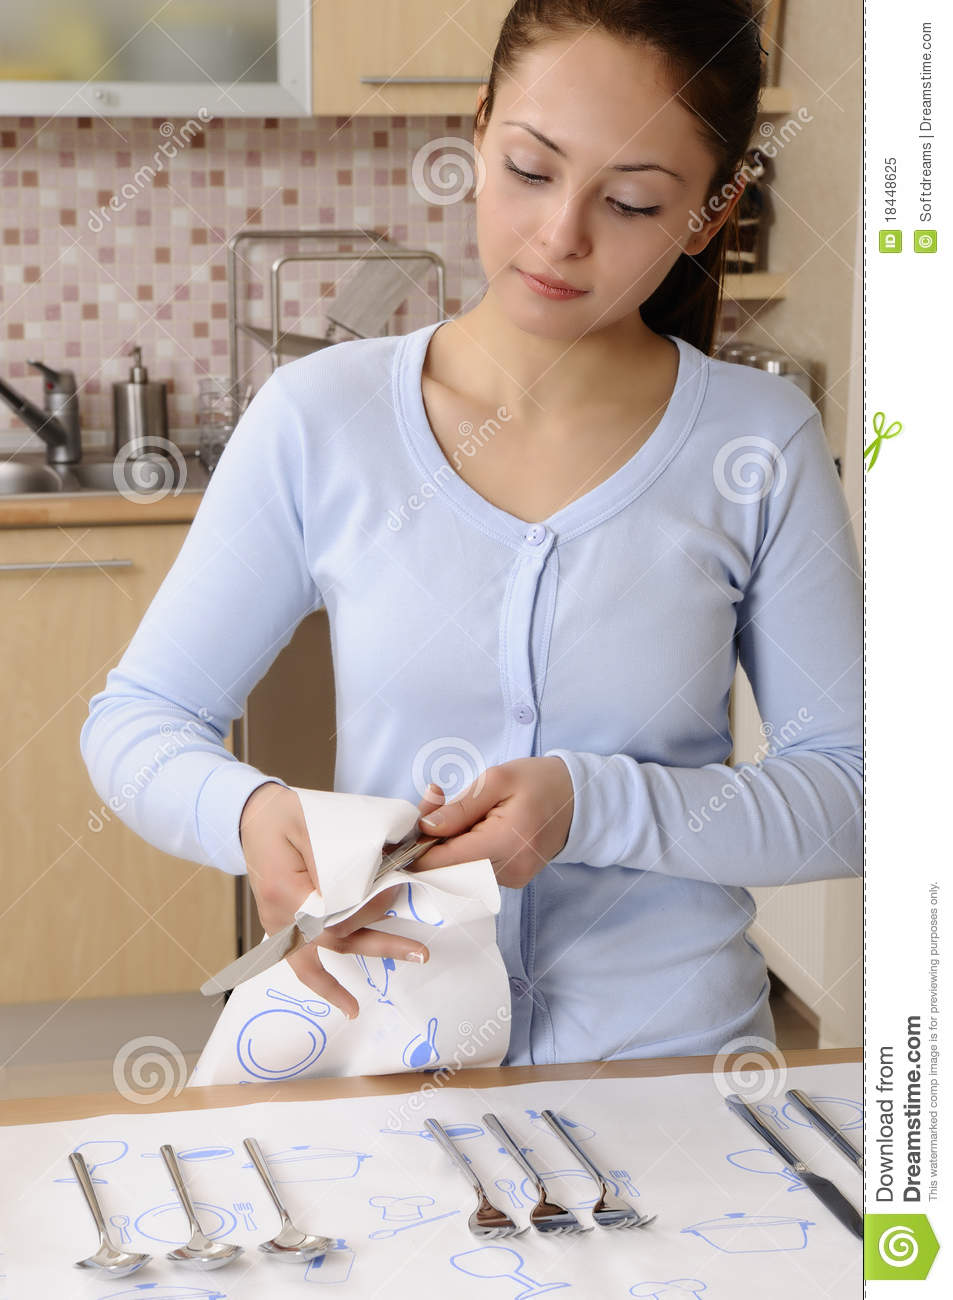 Women Cleaning The House Royalty Free Stock Image